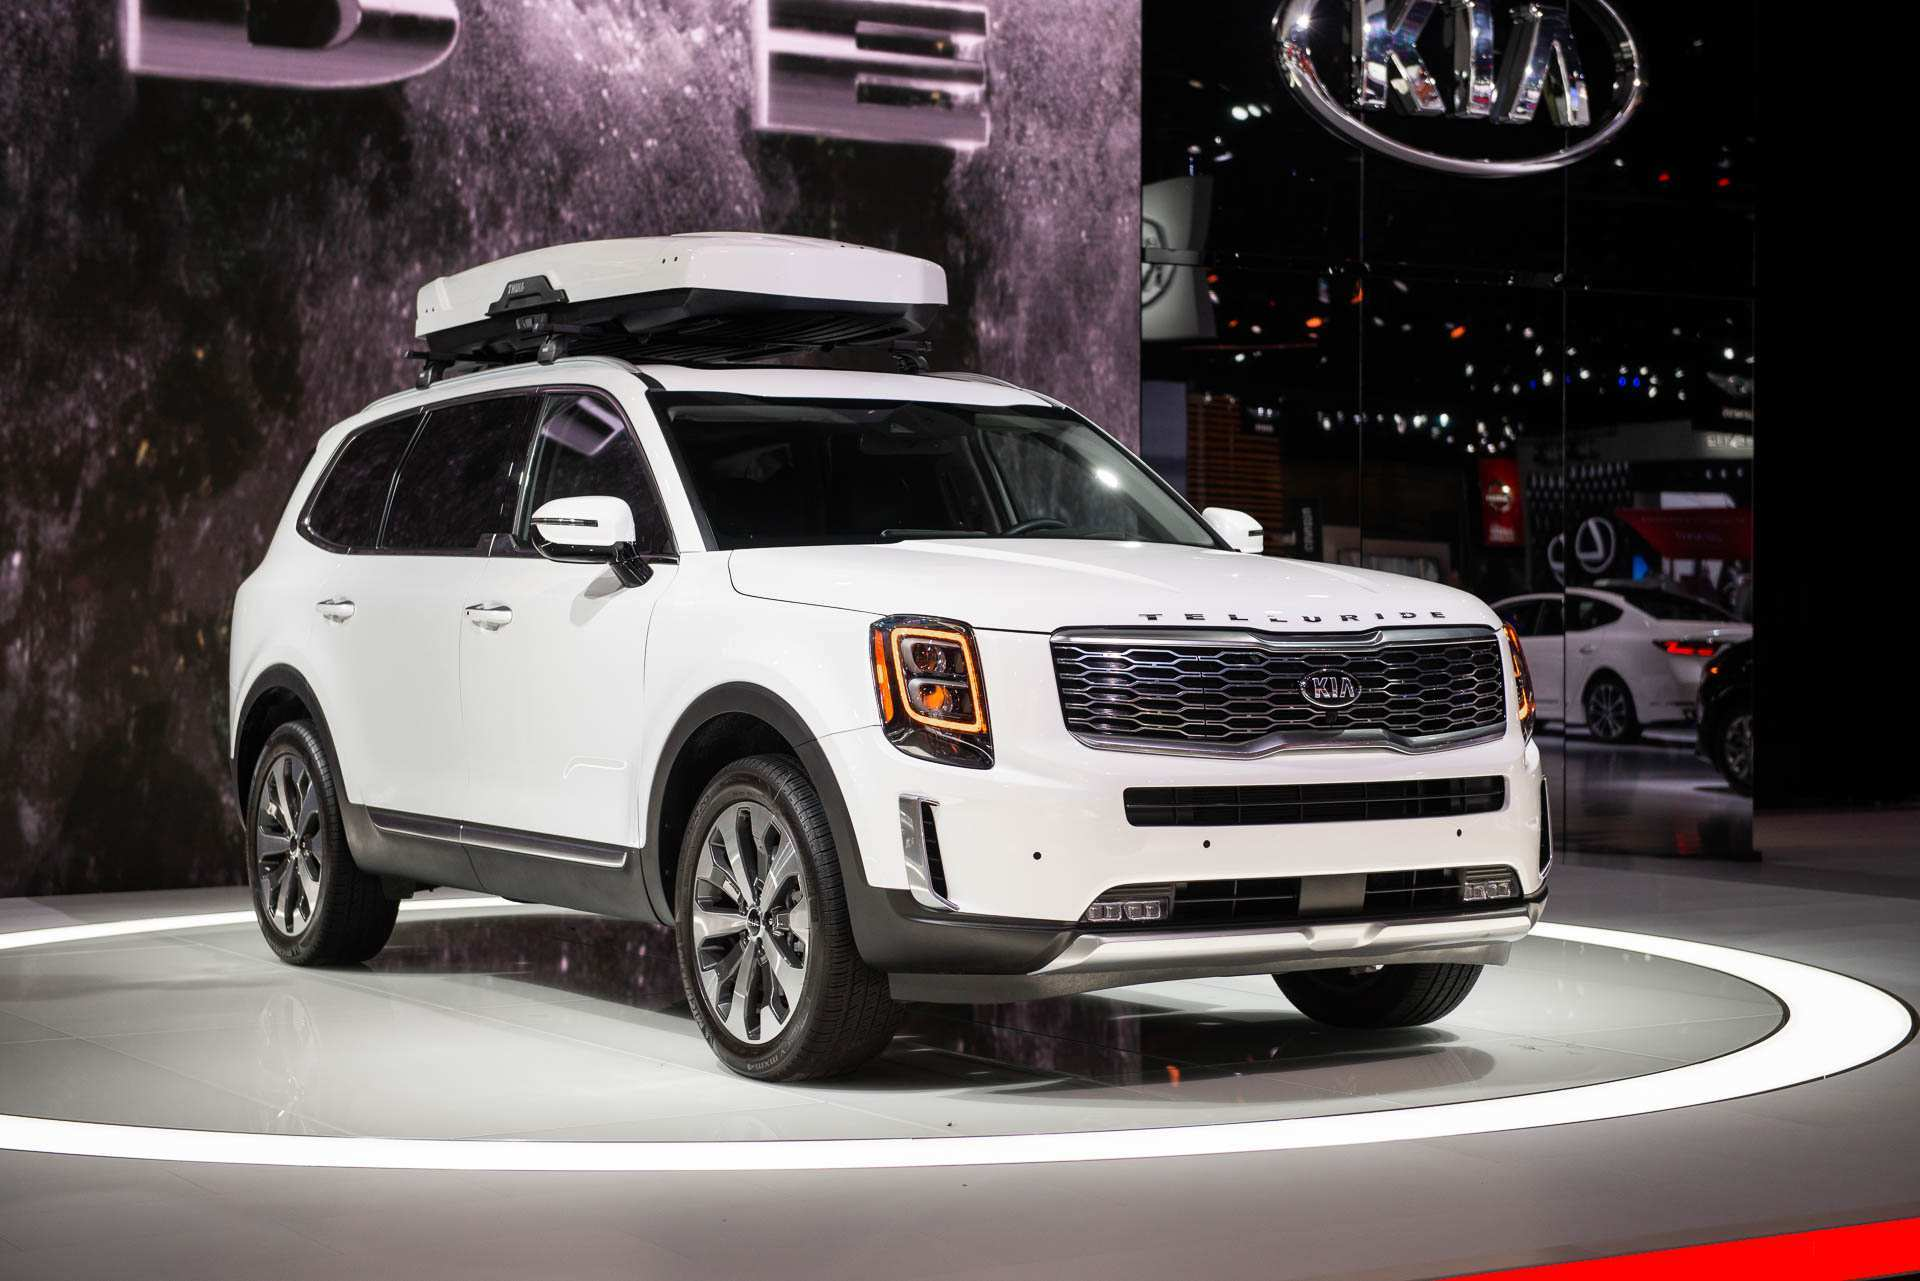 37 Concept of 2020 Kia Telluride Lx Photos by 2020 Kia Telluride Lx